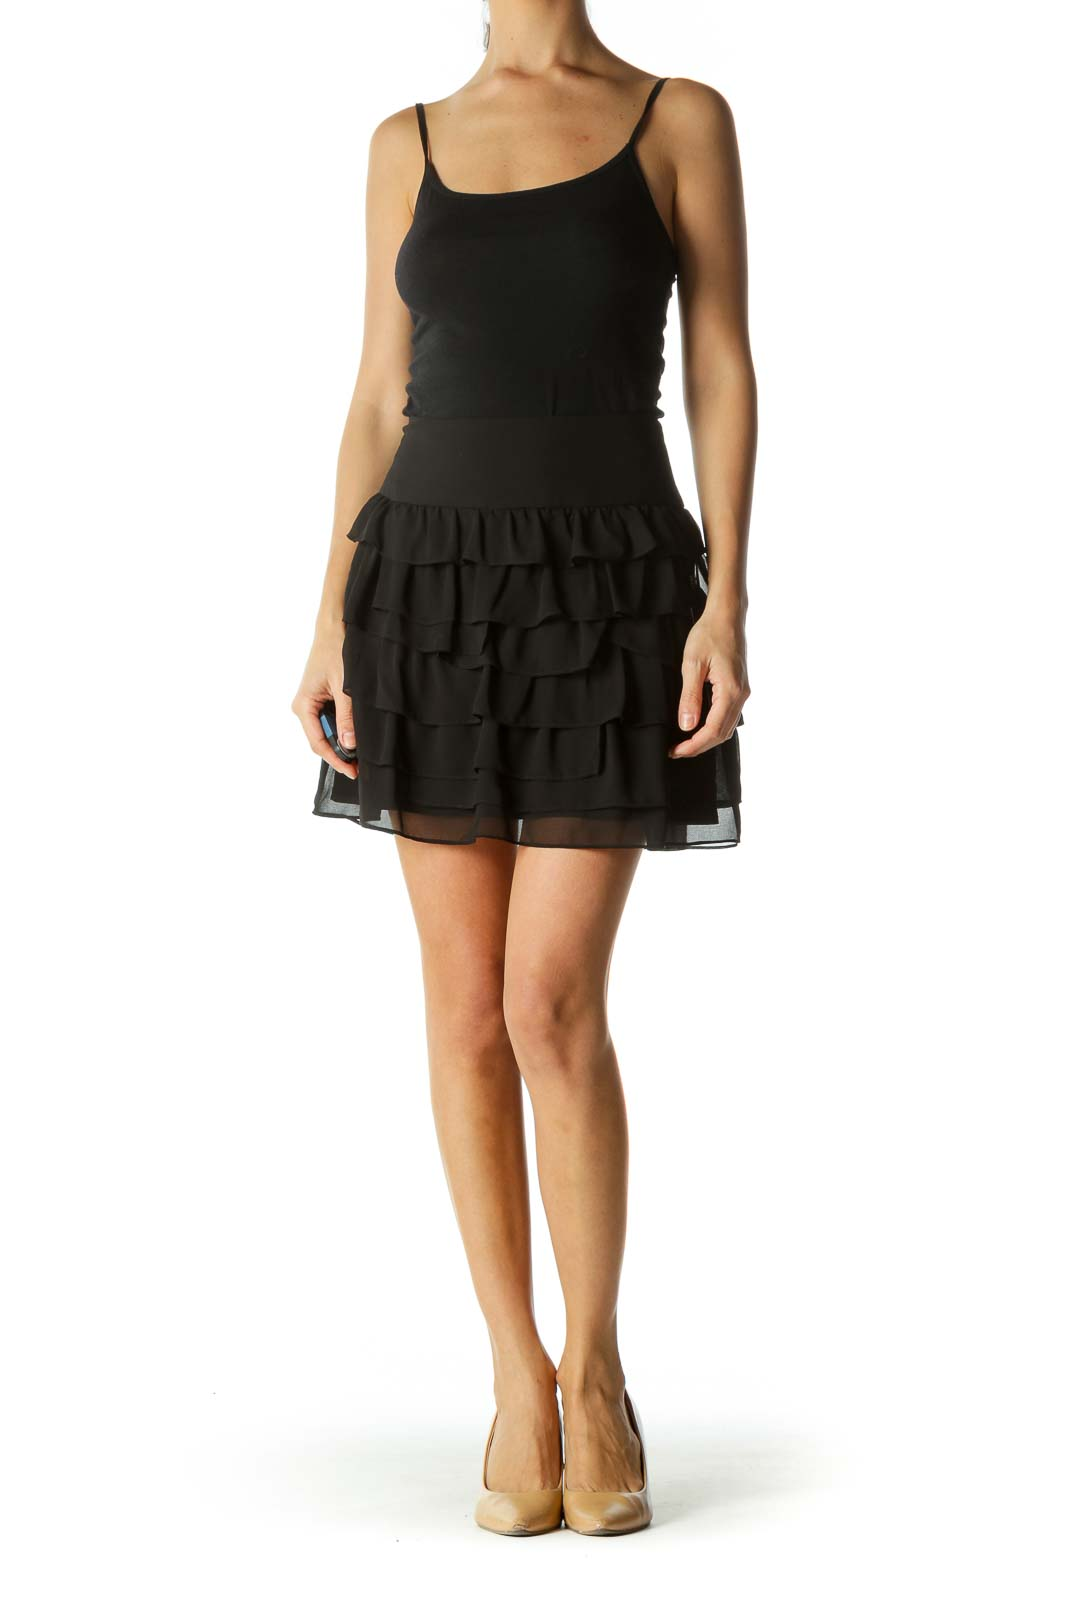 Black Layered MIni Skirt